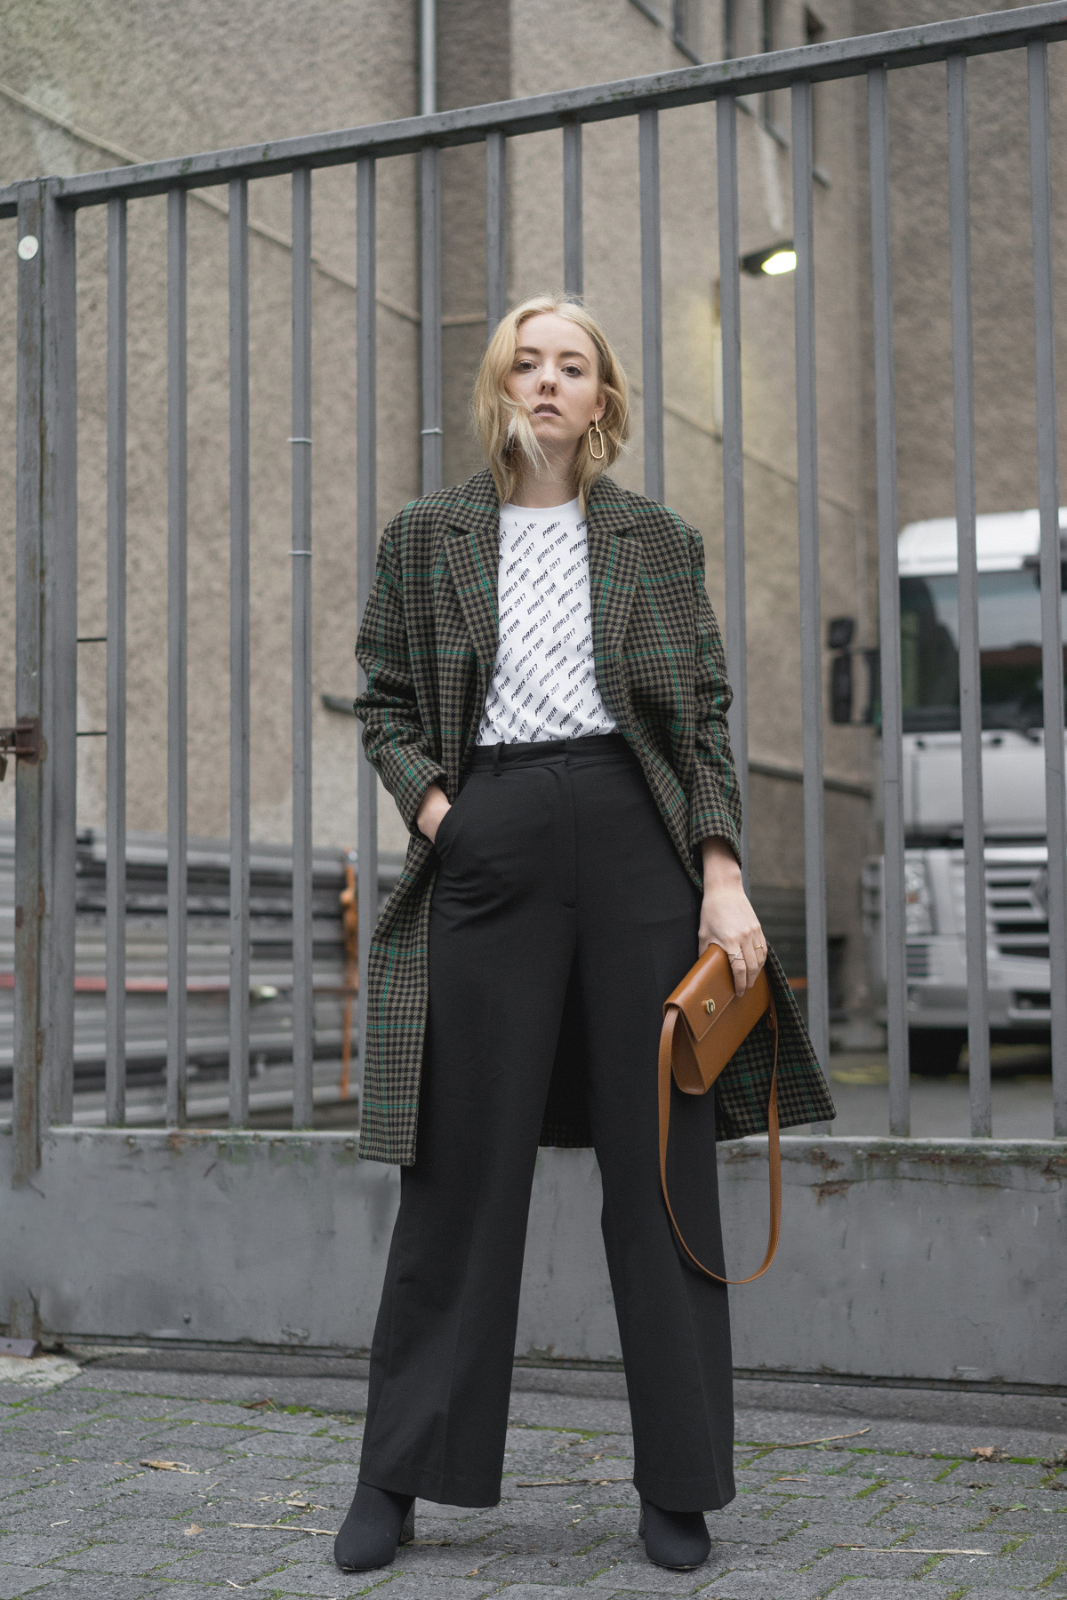 blog_instagram_Blogger_Fashion_deutschland_beauty_style_bloggerin_travel_berlin_thelimitsofcontrol_checked Coat_2